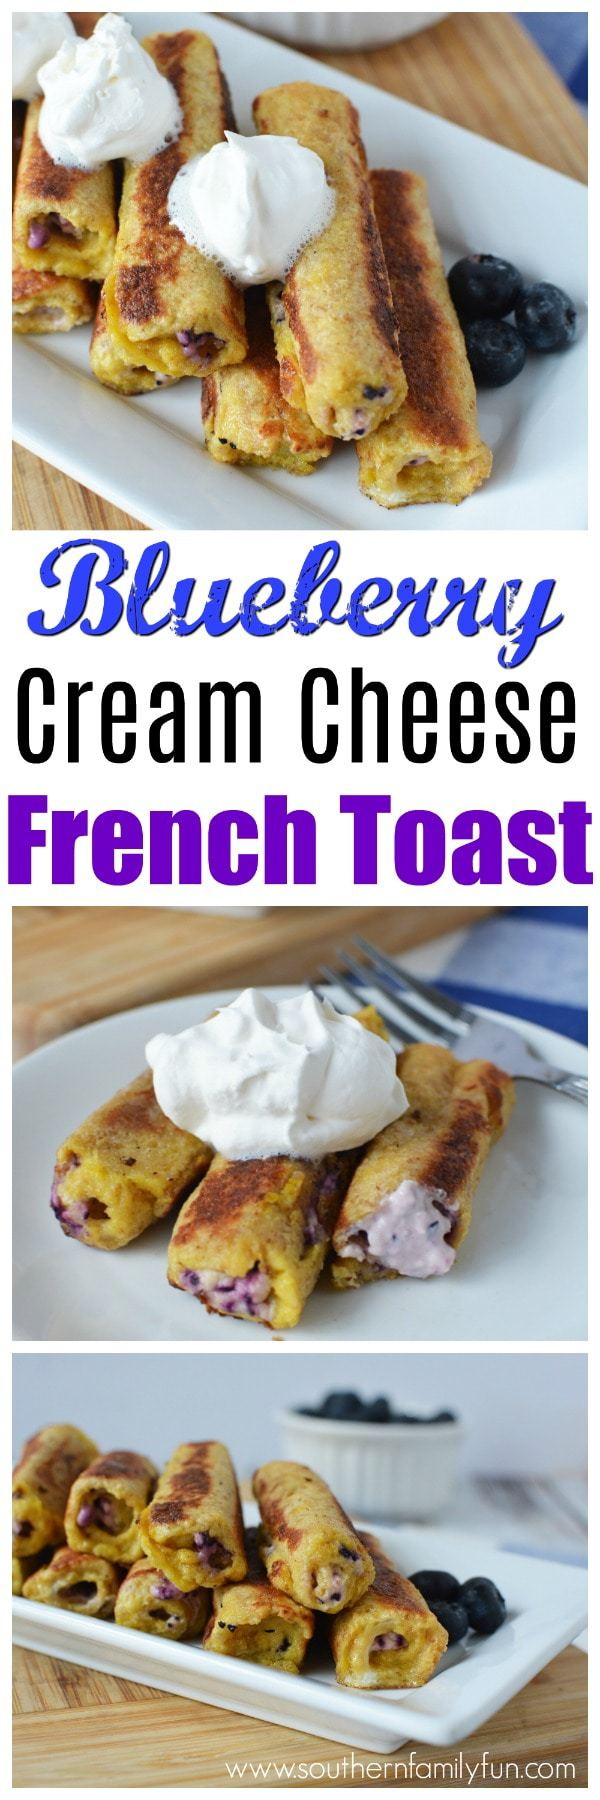 Blueberry French Toast: Breakfast is the one meal you are probably looking for new ideas. It can be so easy to get stuck in the rut of eating the same things, morning after morning. Skip the boring breakfast, and try your hand in making these Stuffed Blueberry and Cream Cheese French Toast Roll Ups.